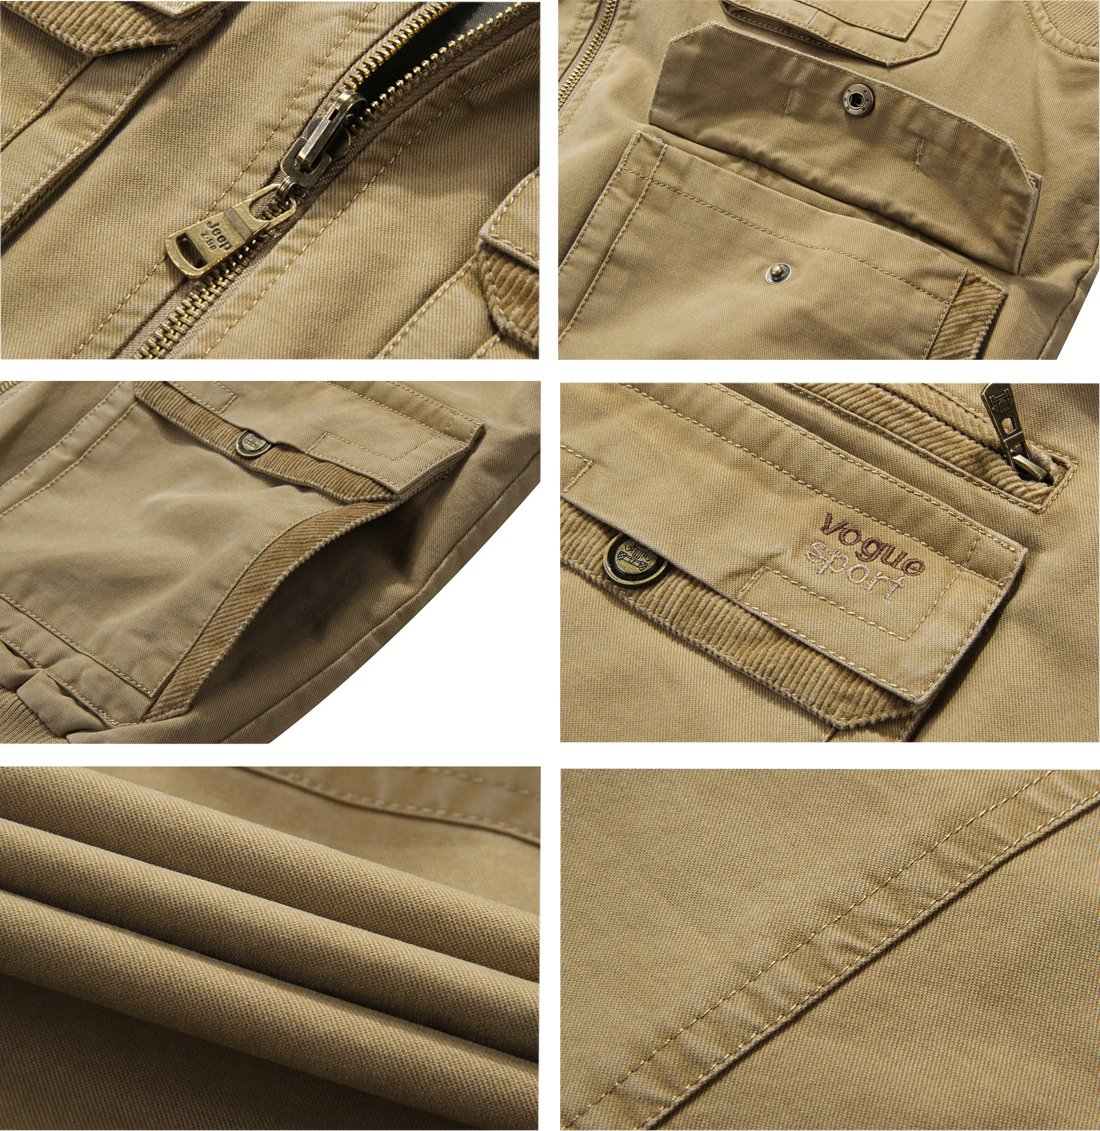 Gihuo Men's Reversible Cotton Leisure Outdoor Pockets Fish Photo Journalist Vest (L, Khaki) by Gihuo (Image #6)